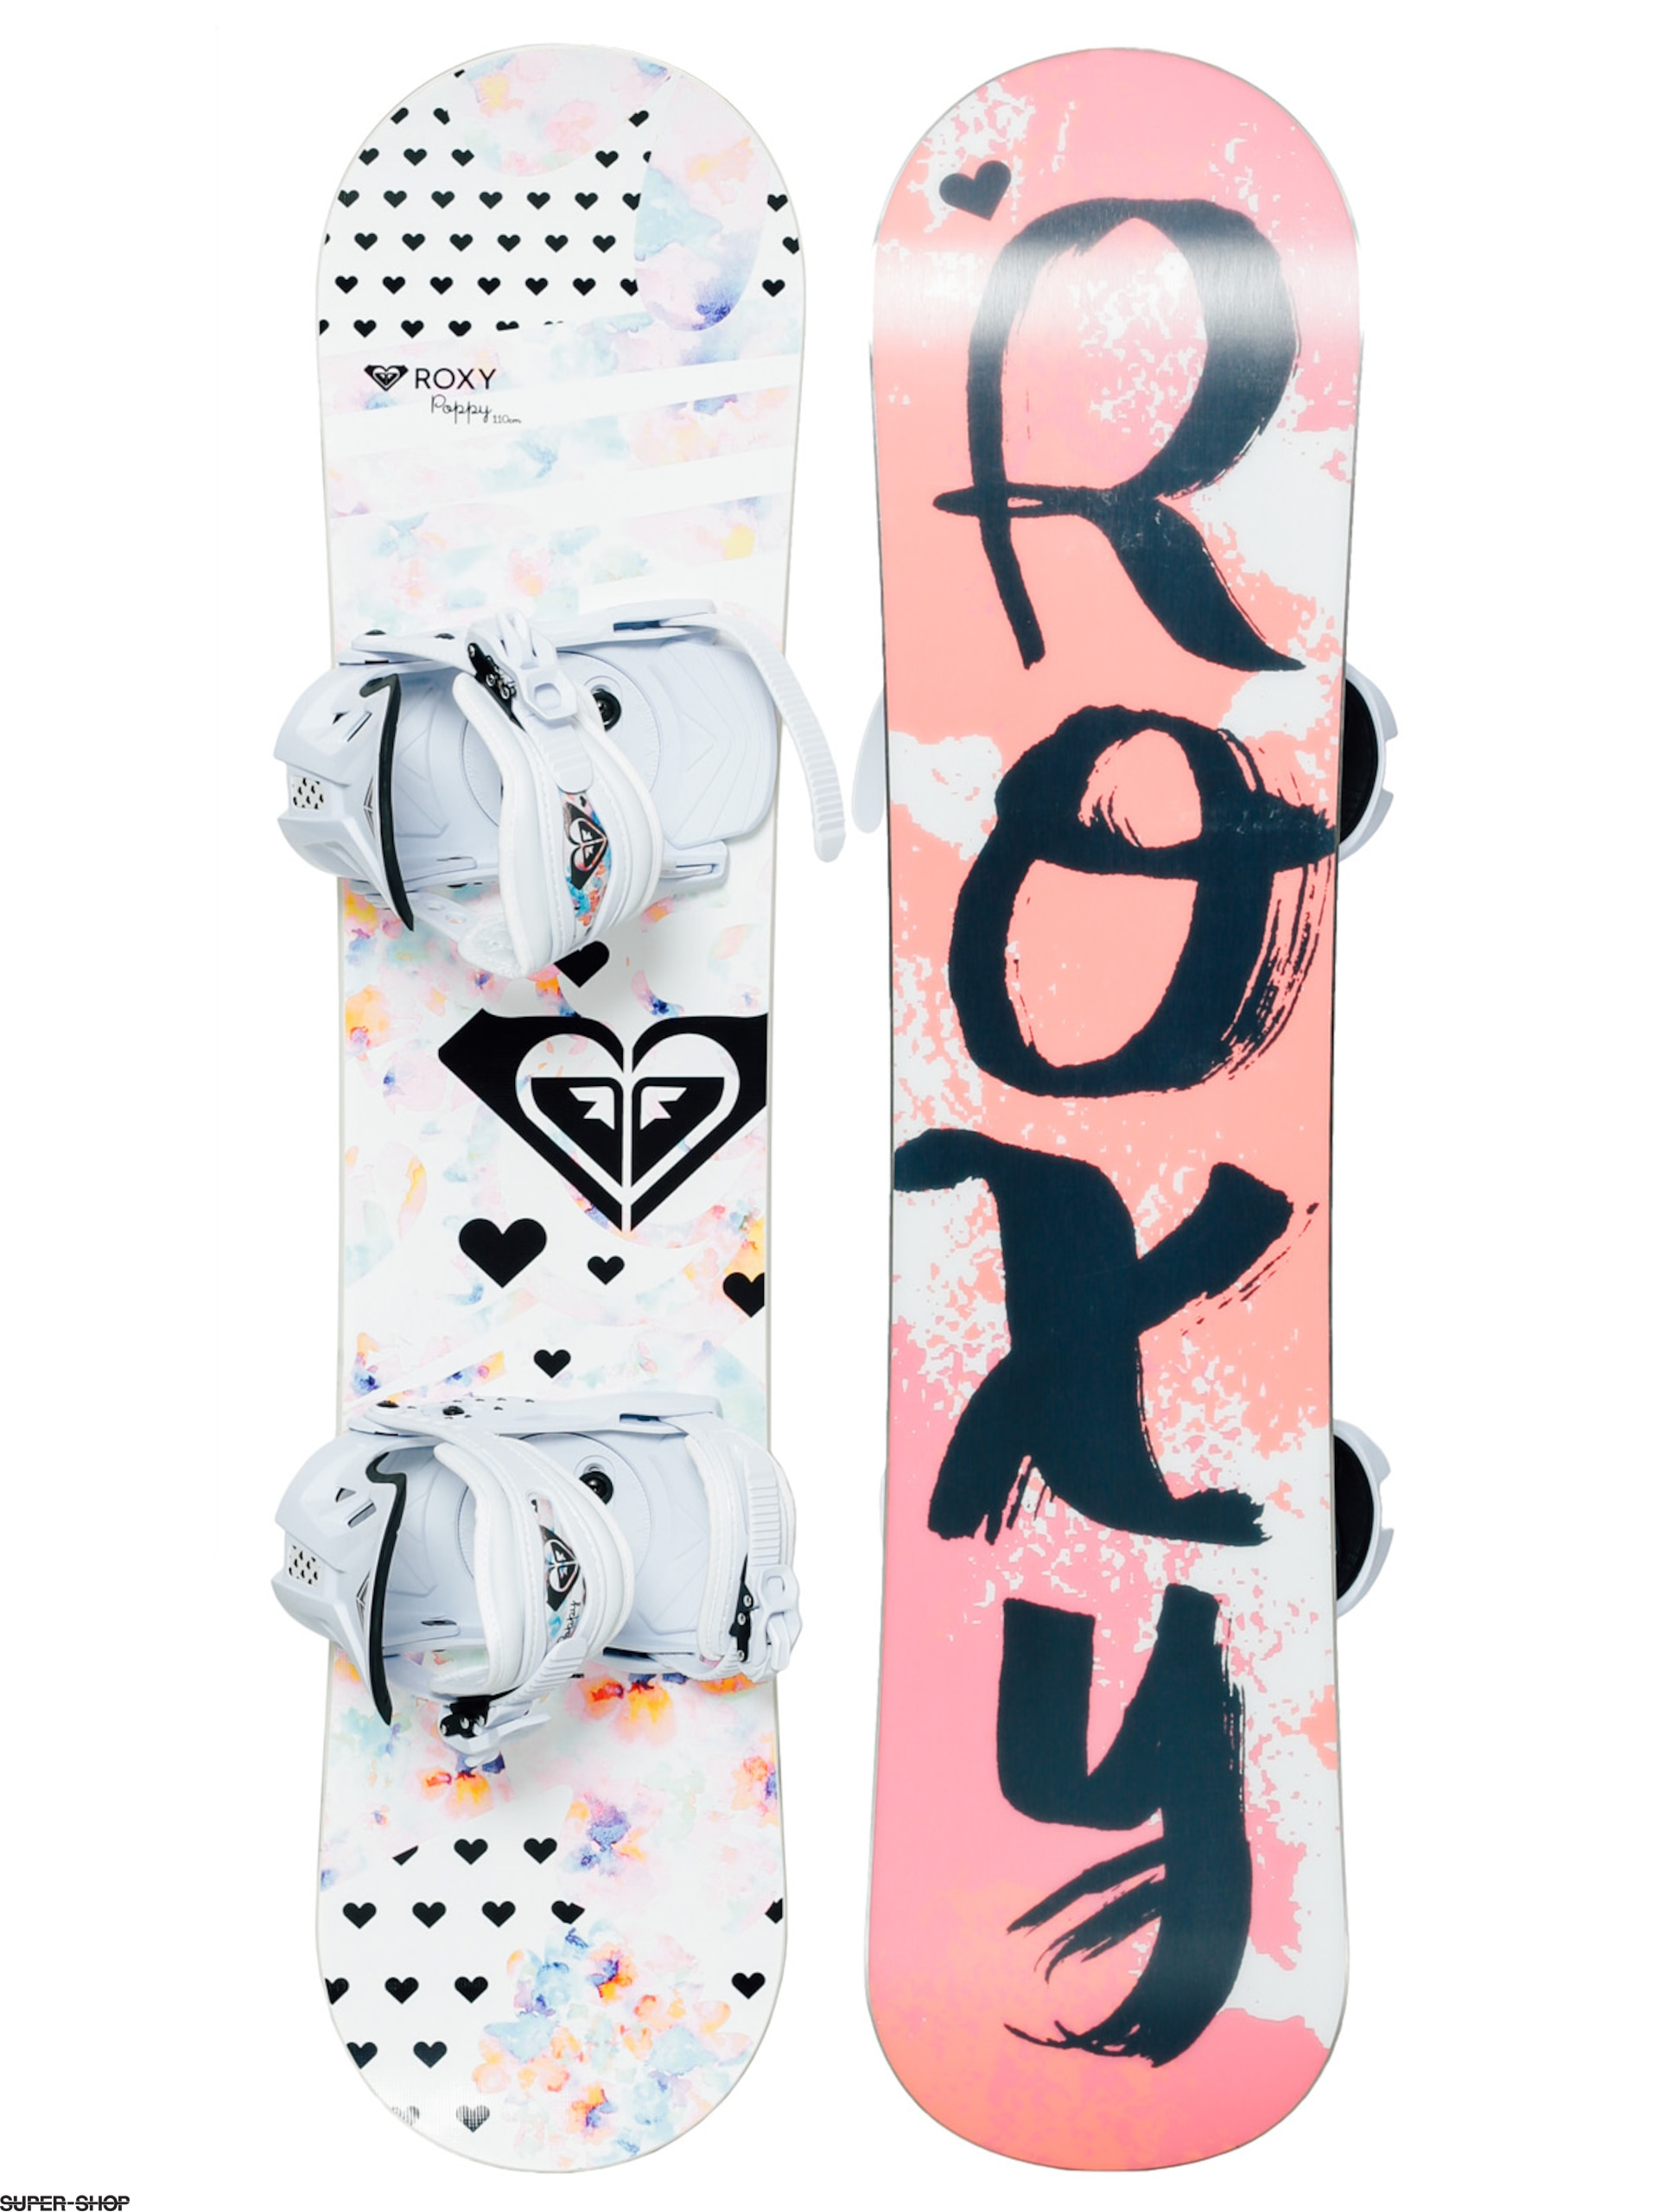 Roxy Kids Snowboard set Poppy